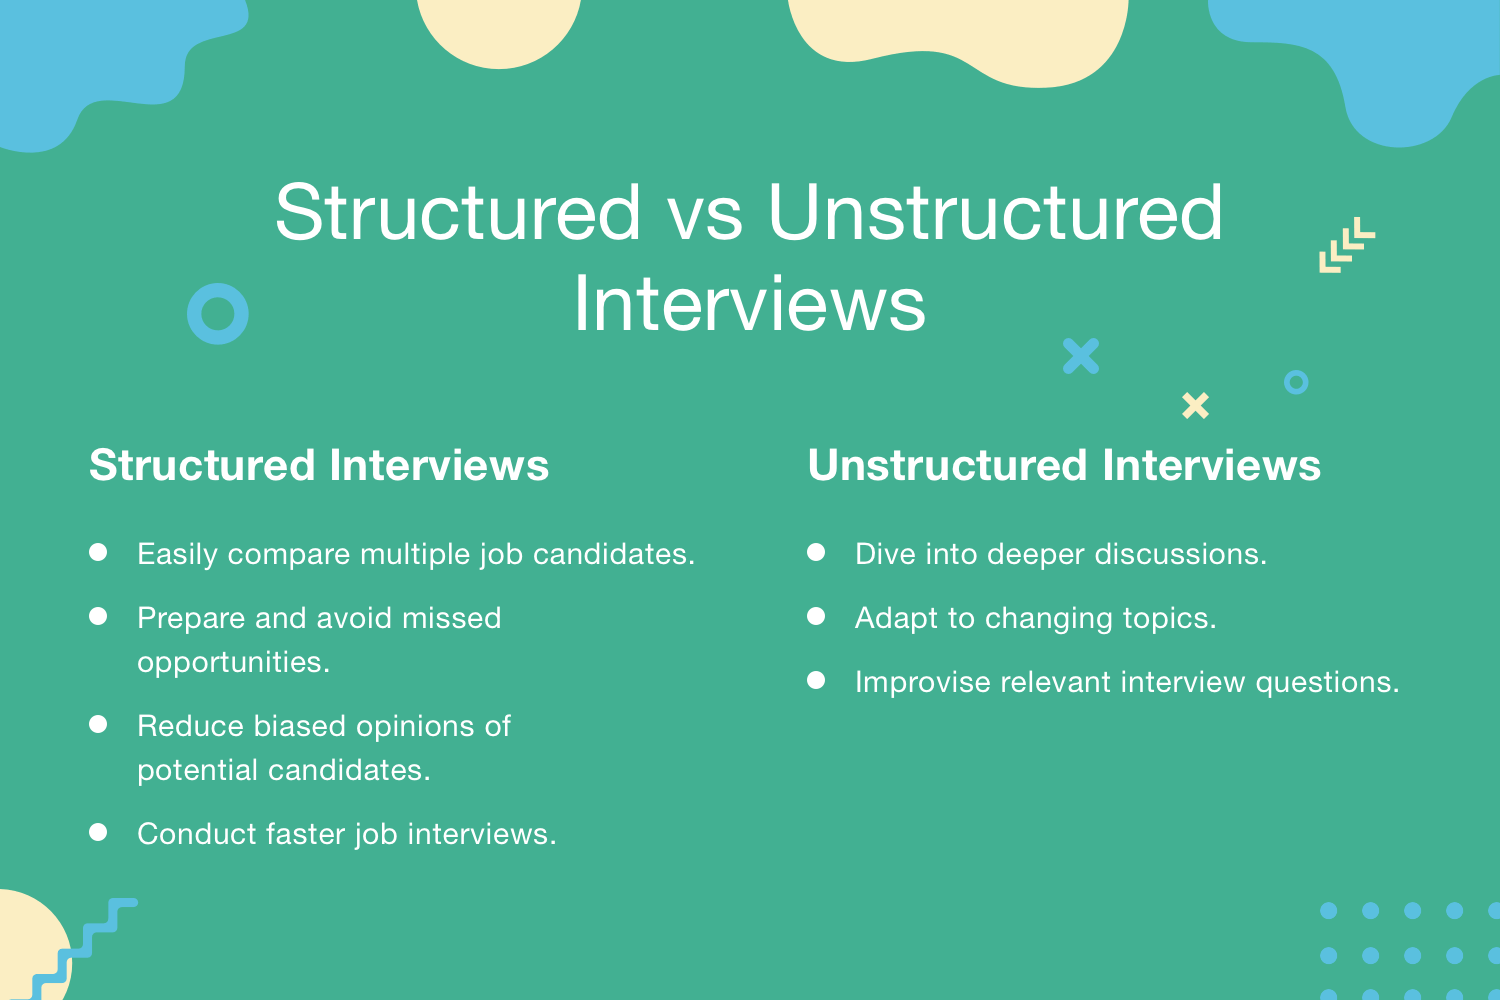 Structured vs Unstructured Interviews